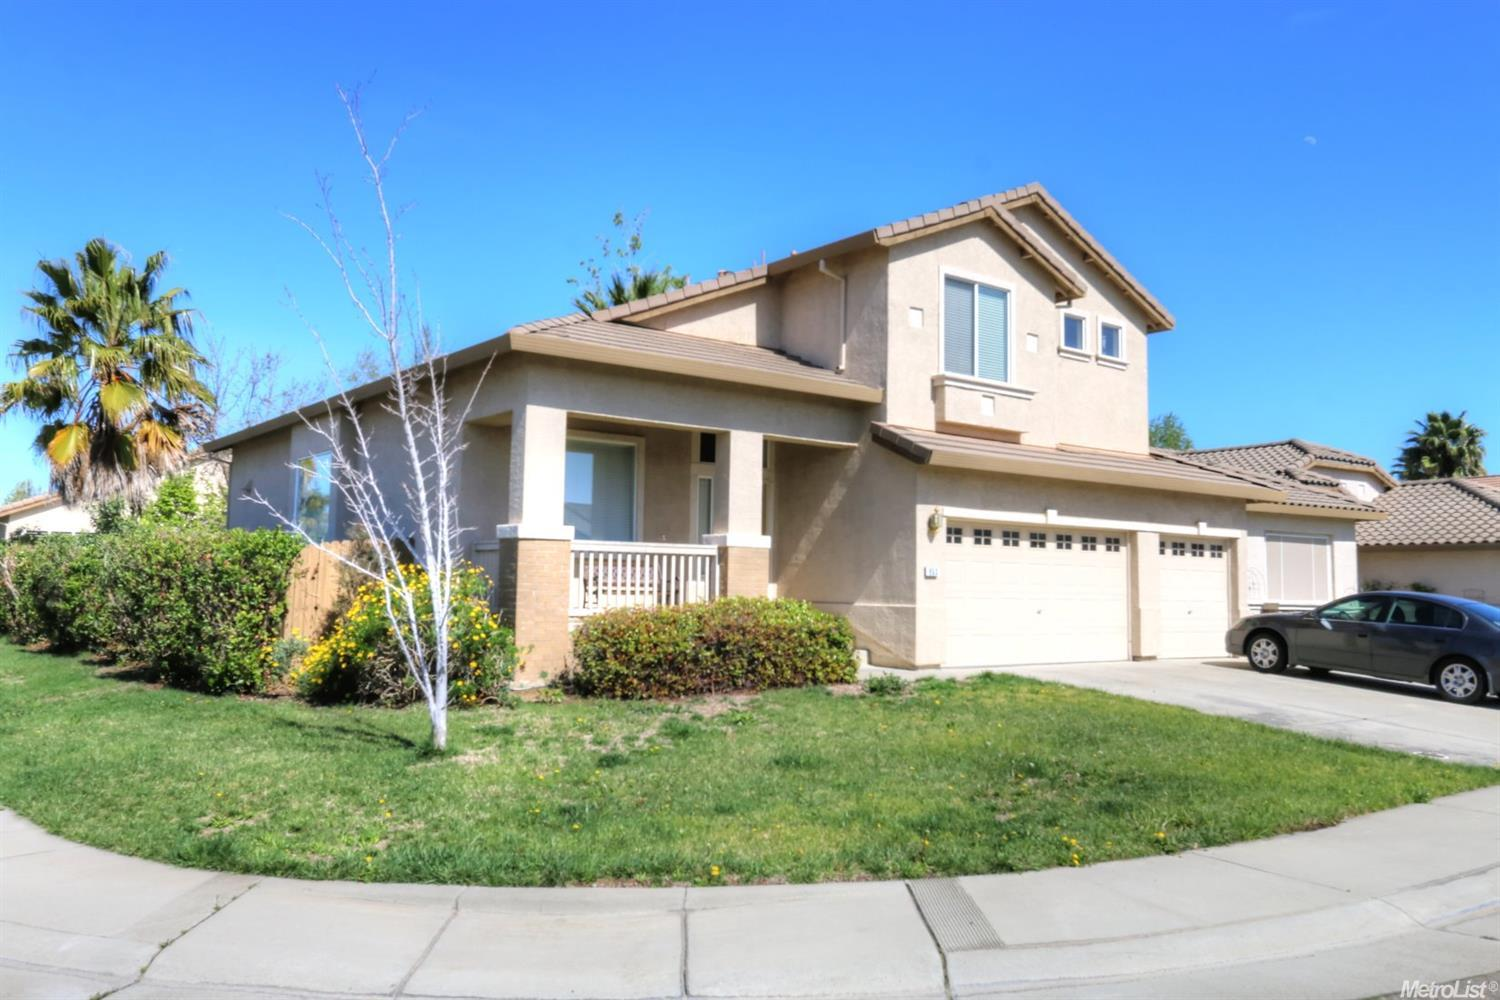 953 Blackwell Way, Galt, CA